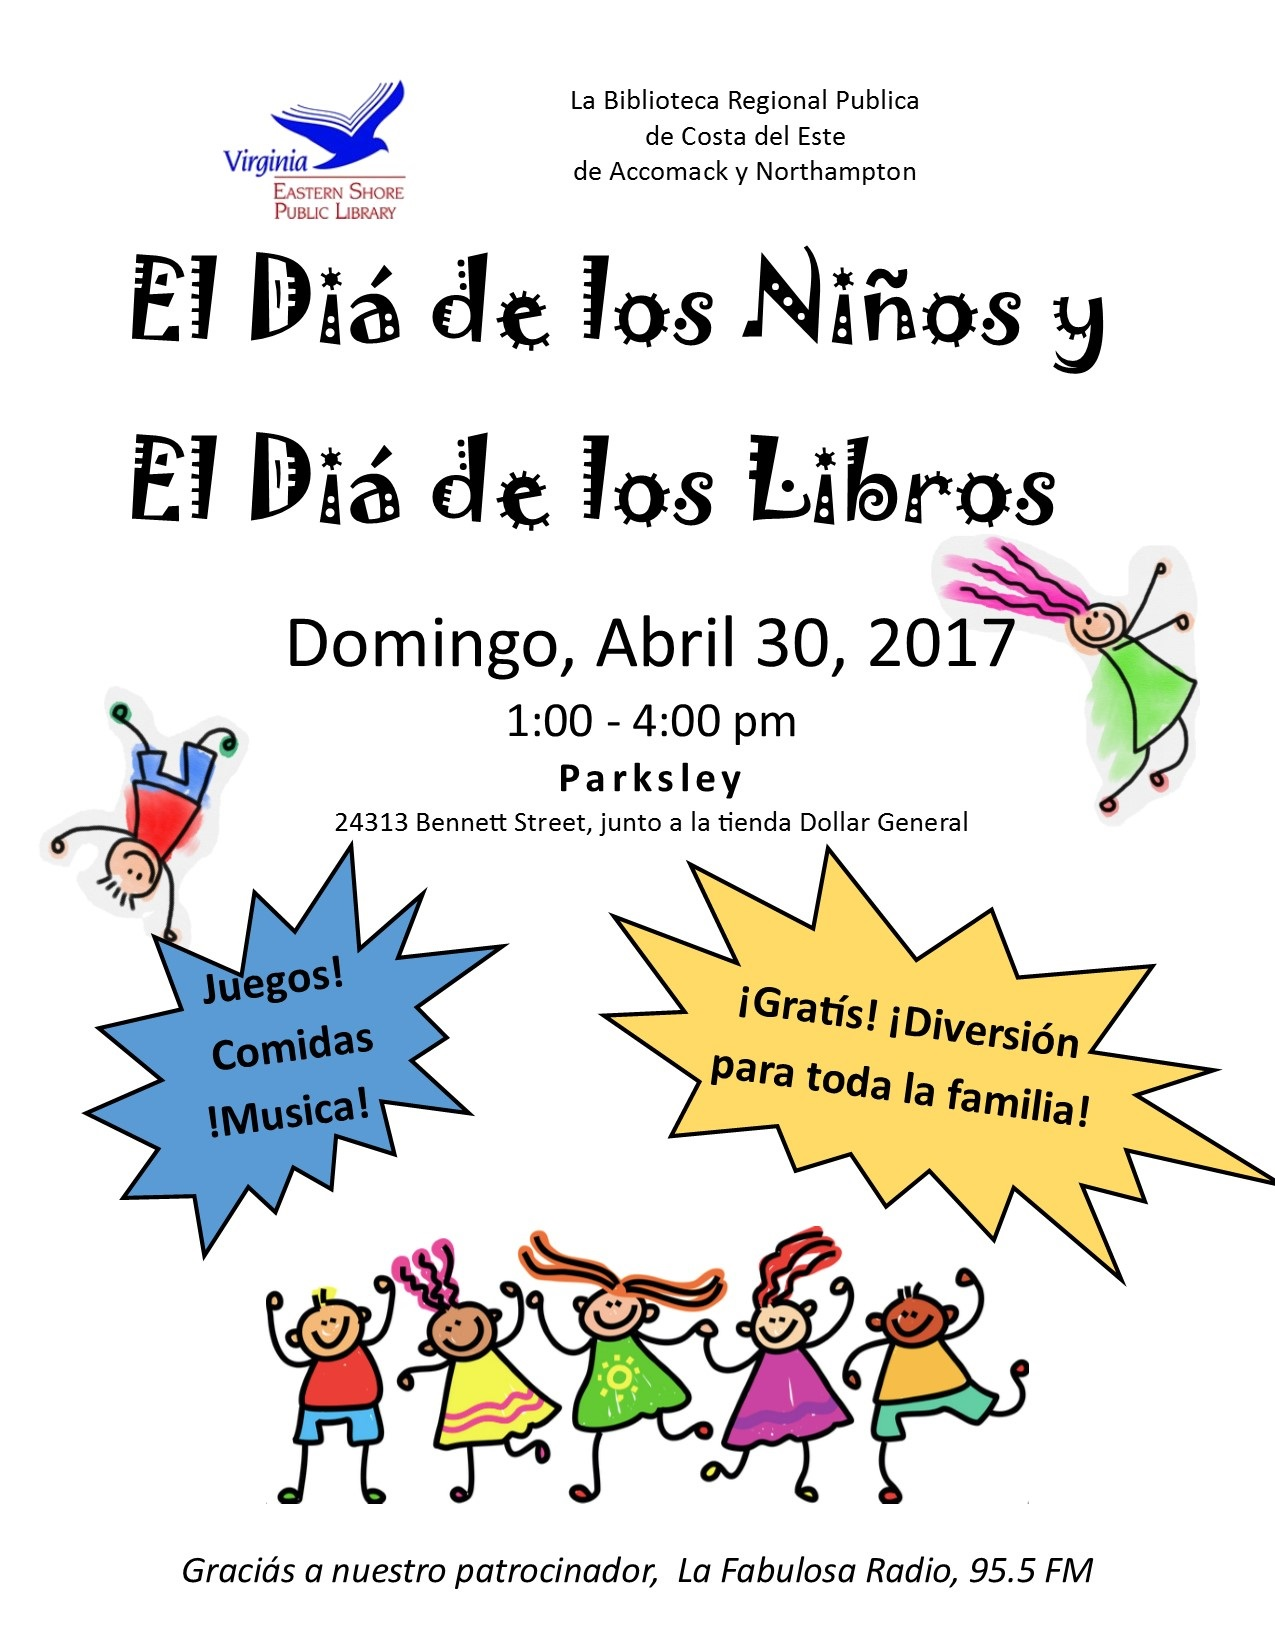 El Dia de los Ninos y El Diá de los Libros @ New Library Location in Parksley | Parksley | Virginia | United States